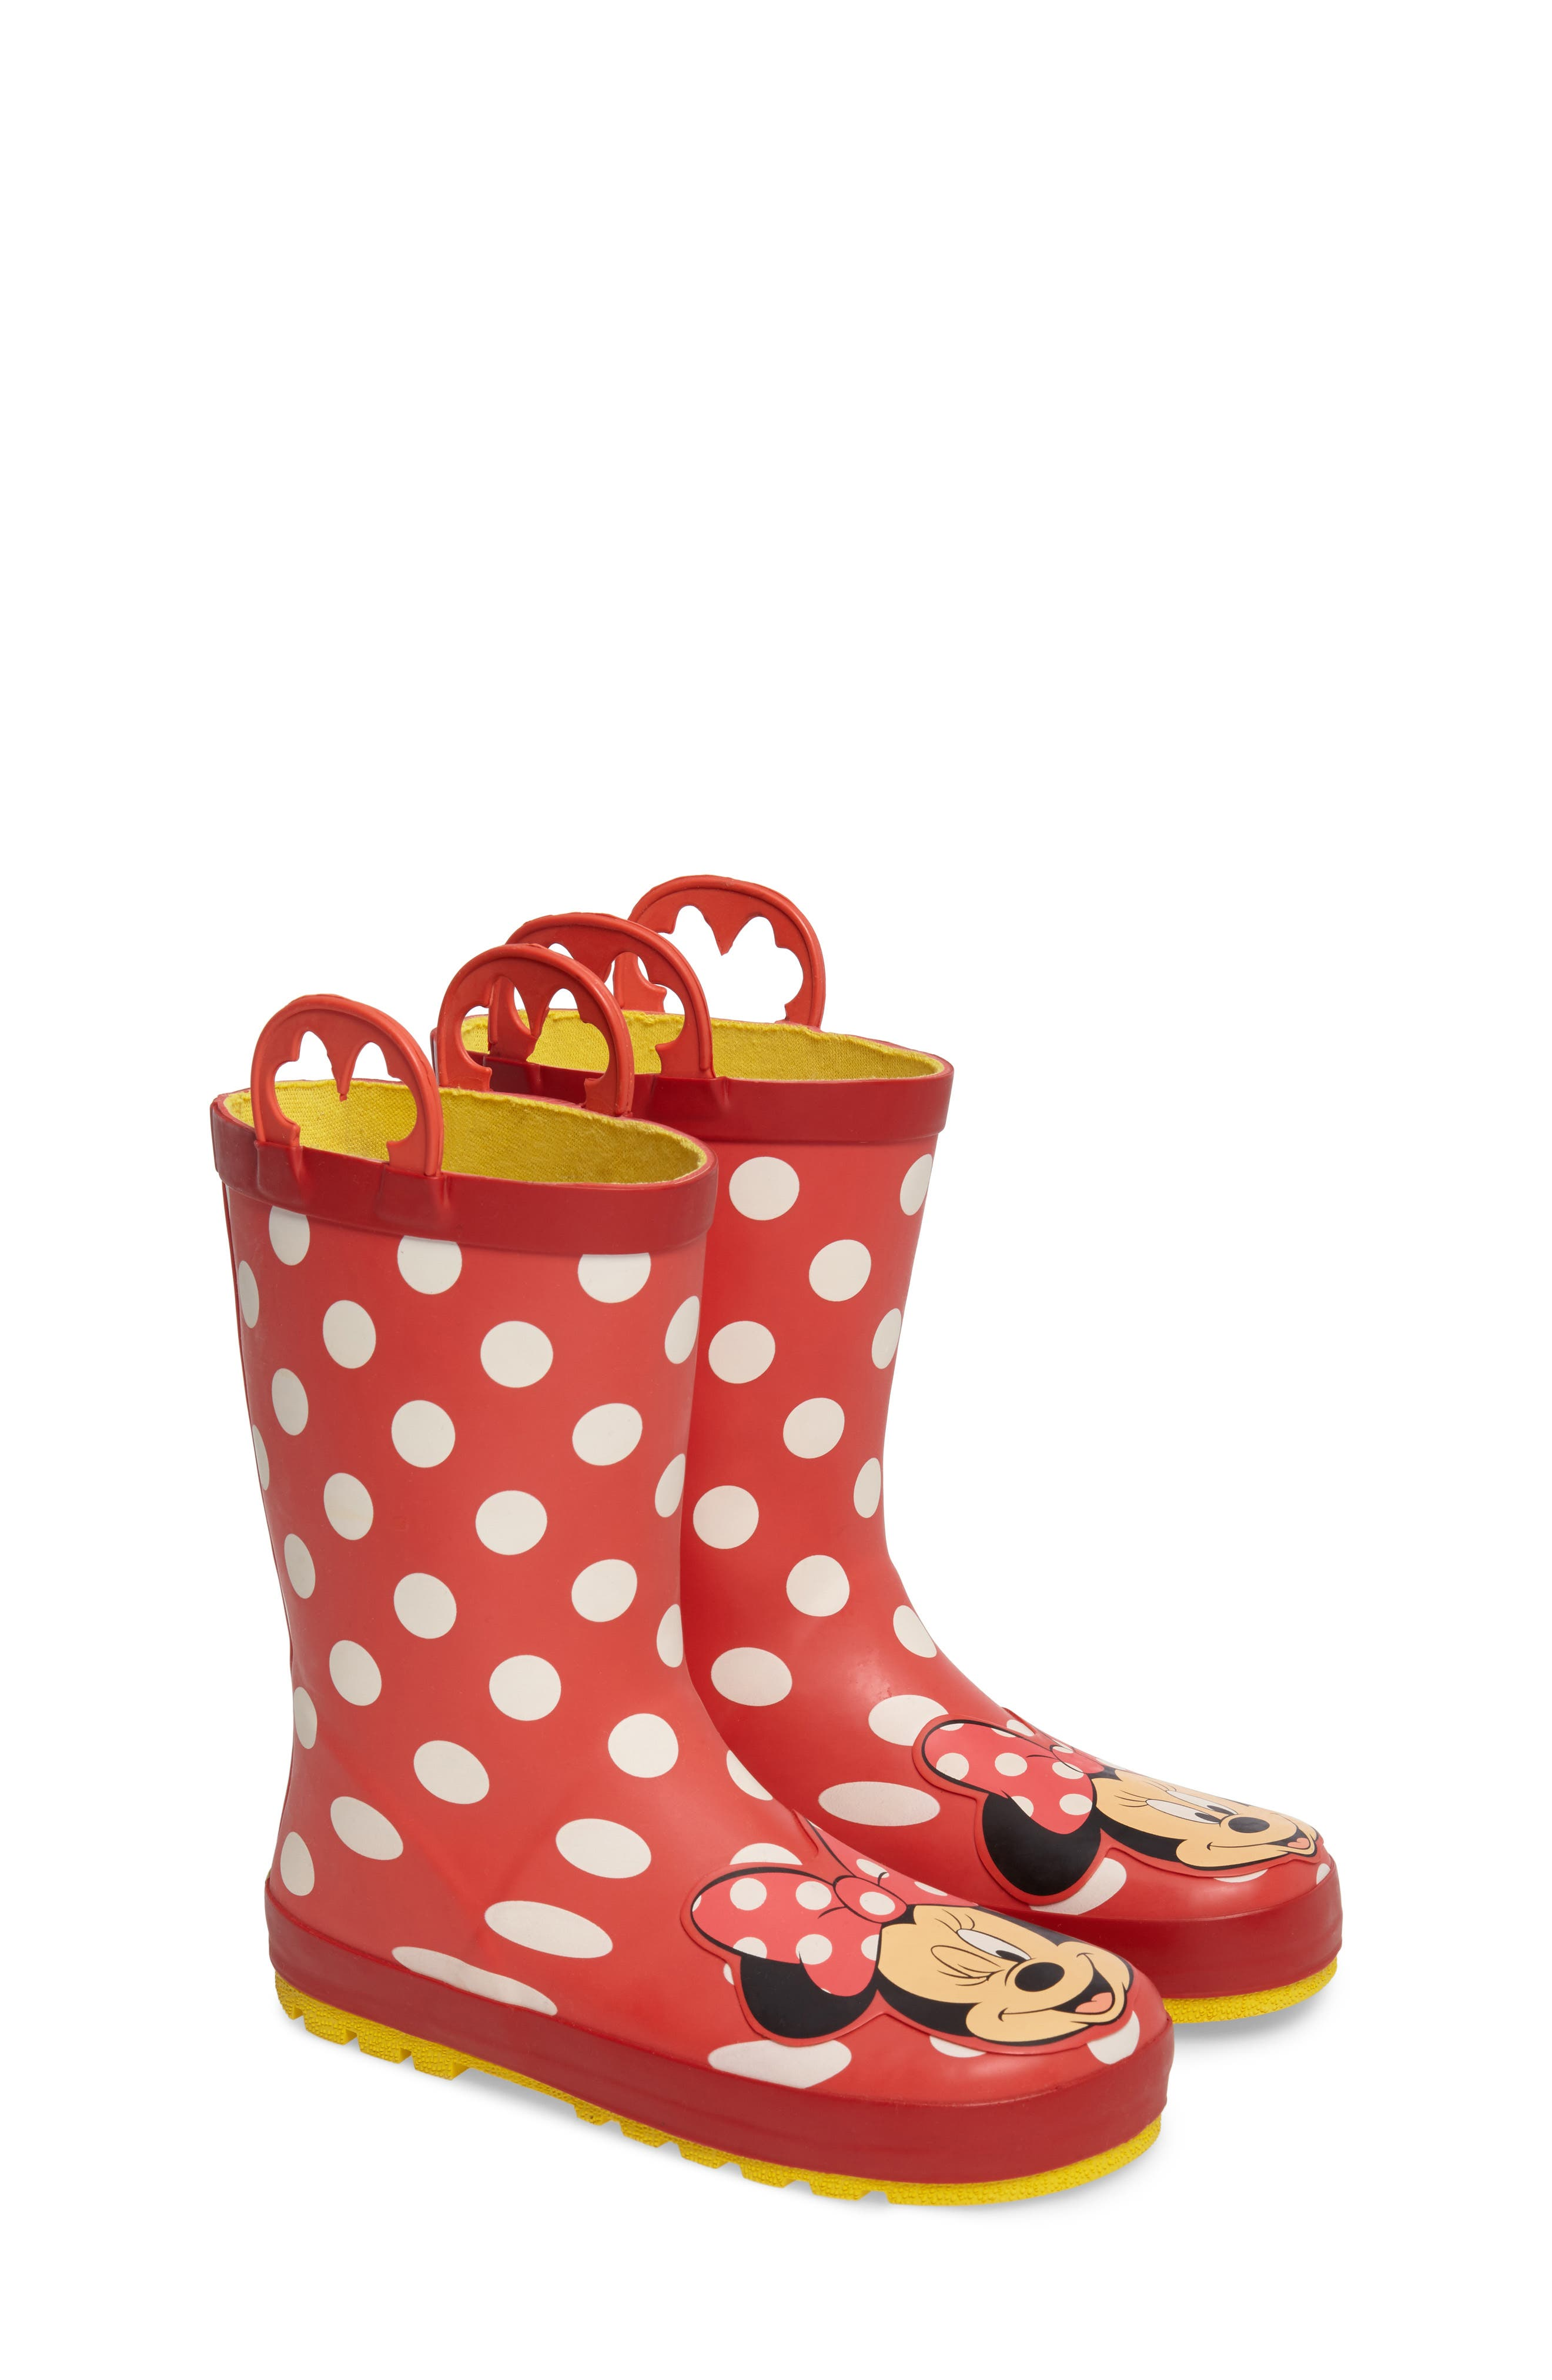 Minnie Mouse Rain Boot,                             Main thumbnail 1, color,                             Red